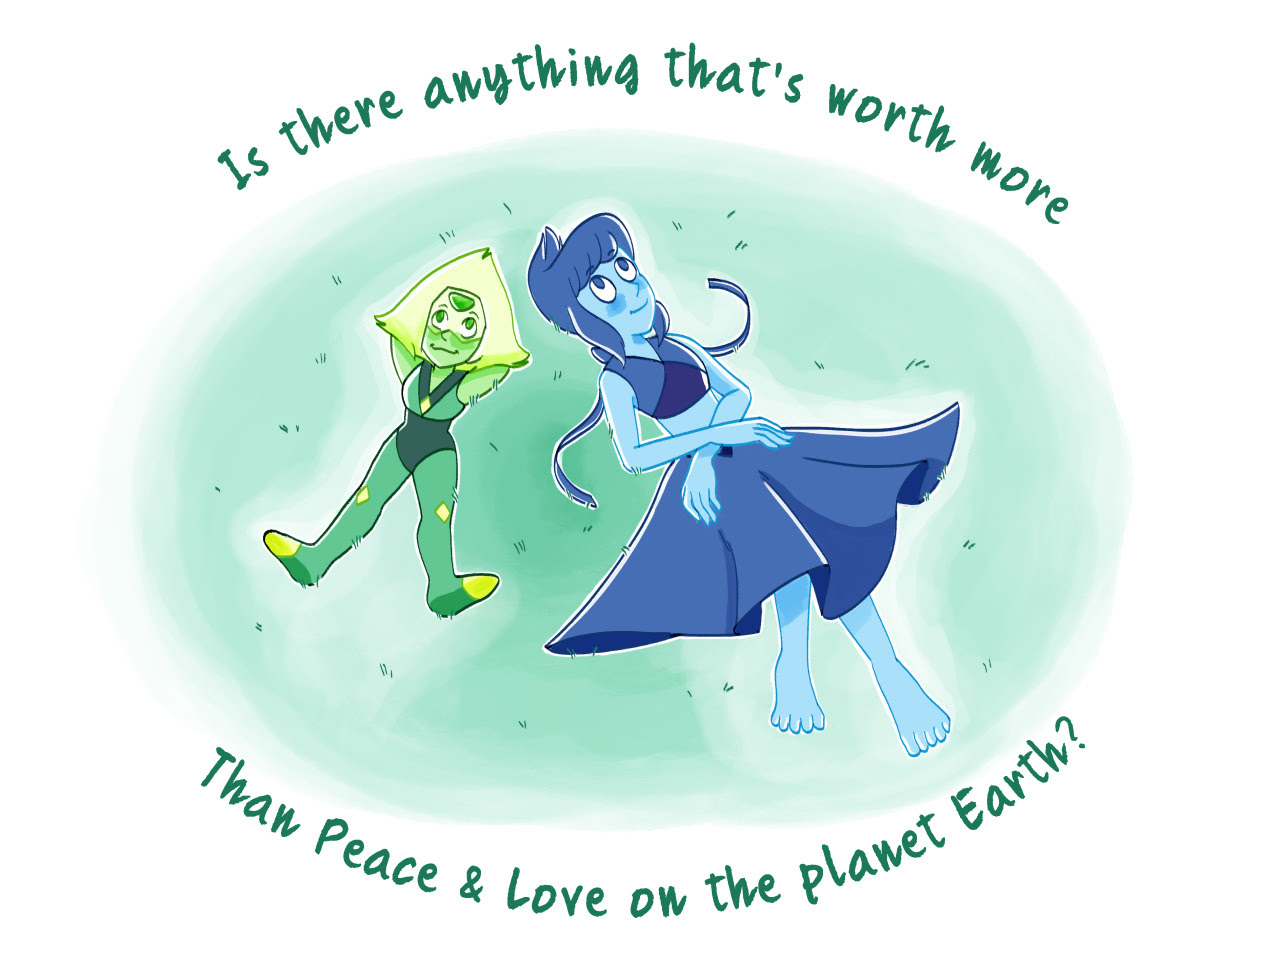 My birthday present for my little sister, featuring her two faves Peridot and Lapis Lazuli from Steven Universe!! They're just chillin', just some gals bein' pals (no they're not they're in love)